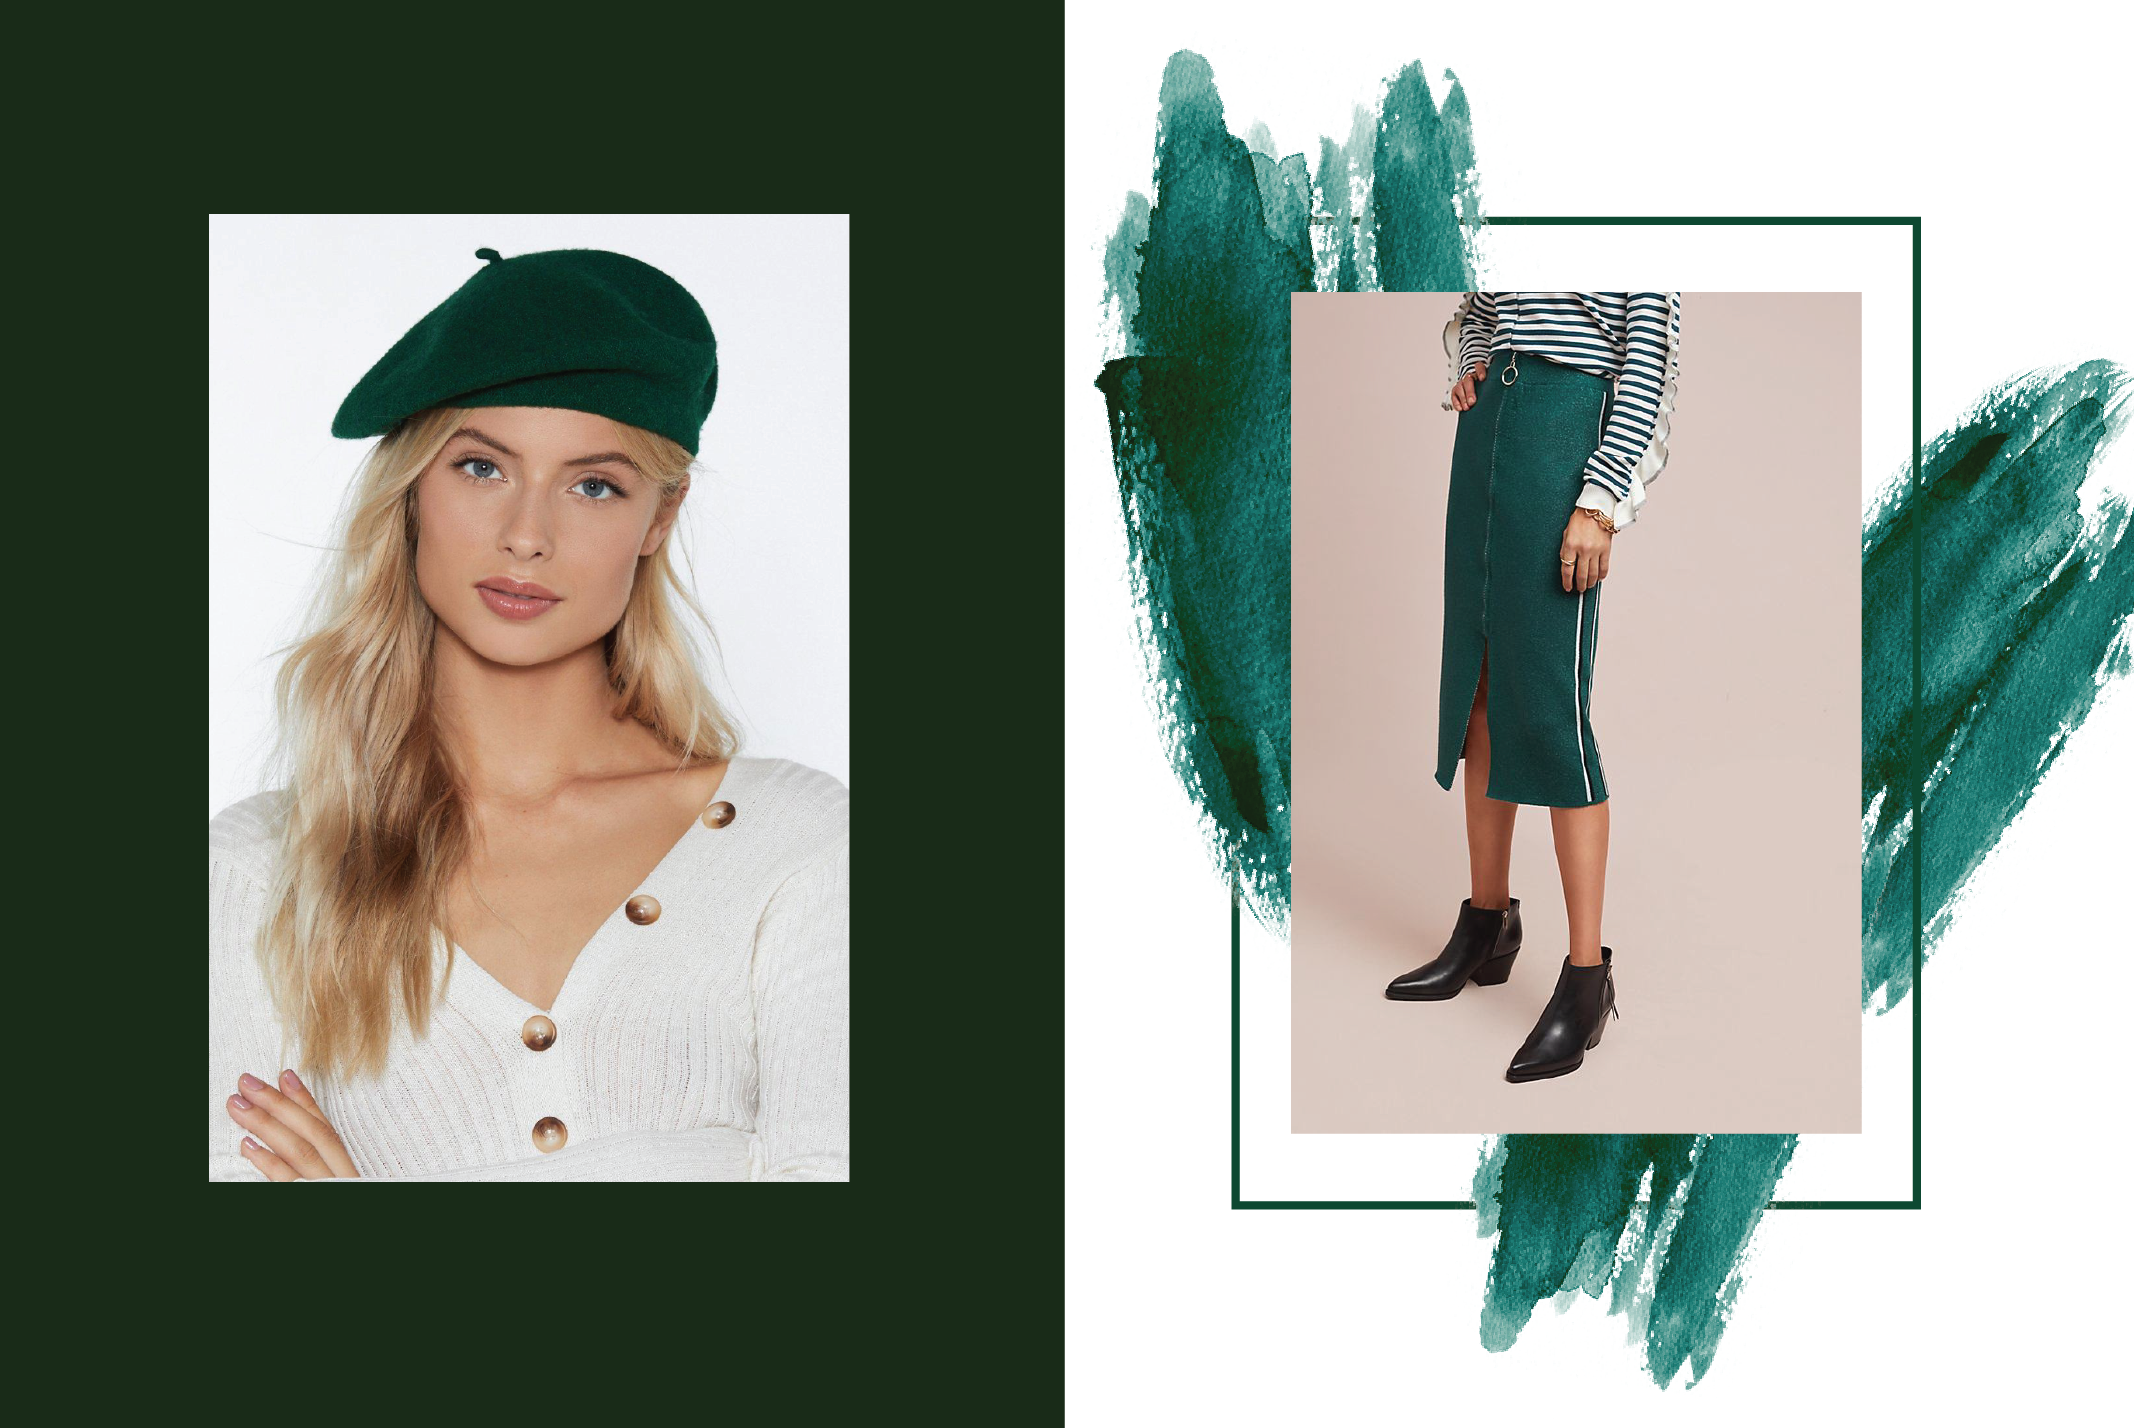 Green is popping up in fashion accessories